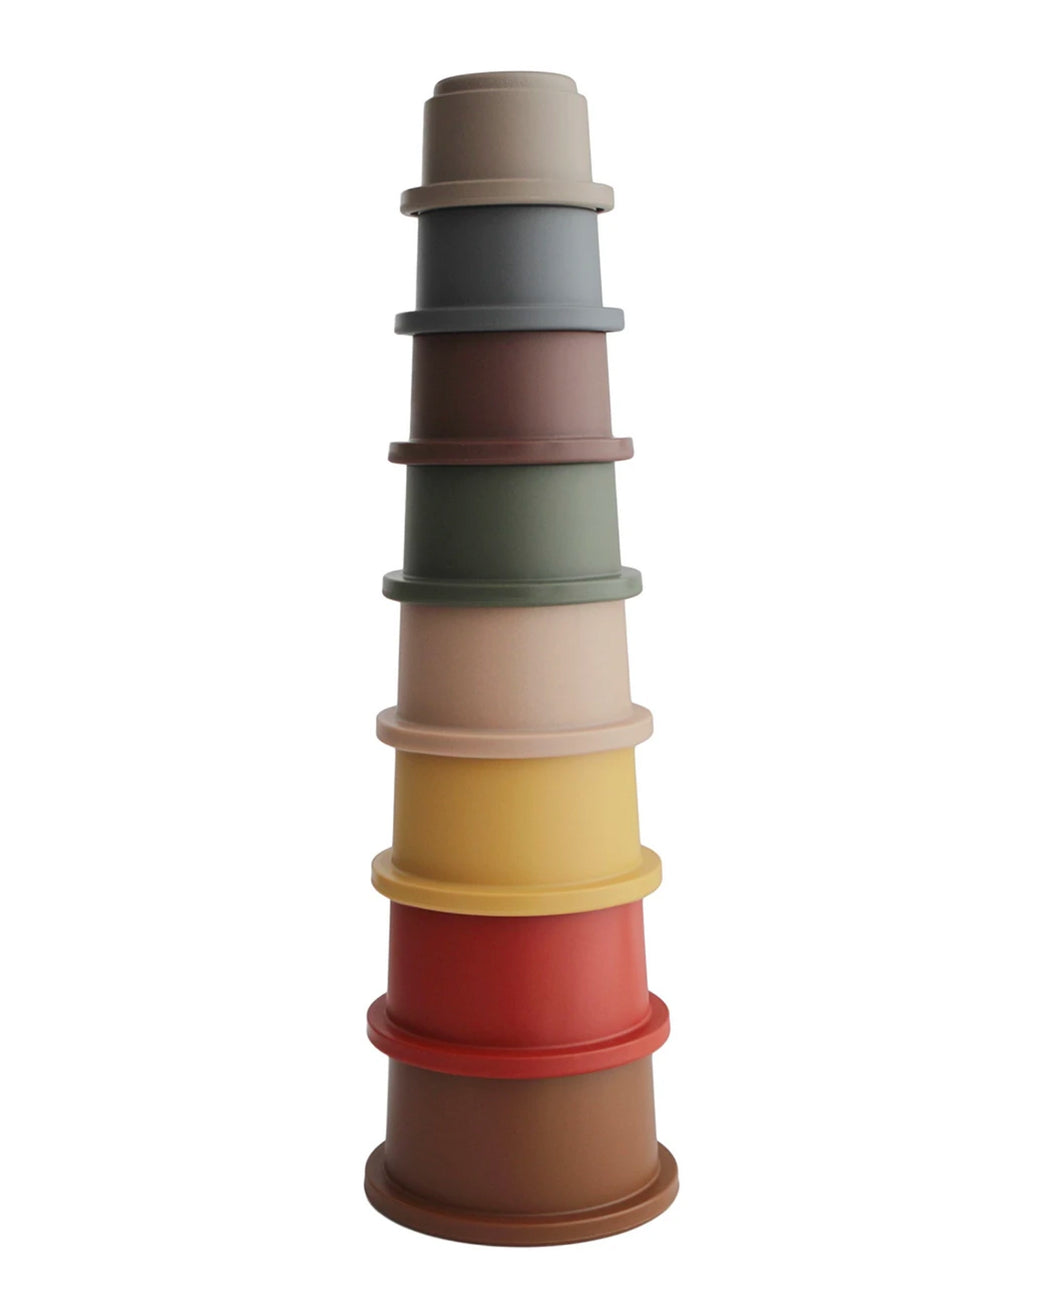 Stacking Cups Toy – Retro Colors